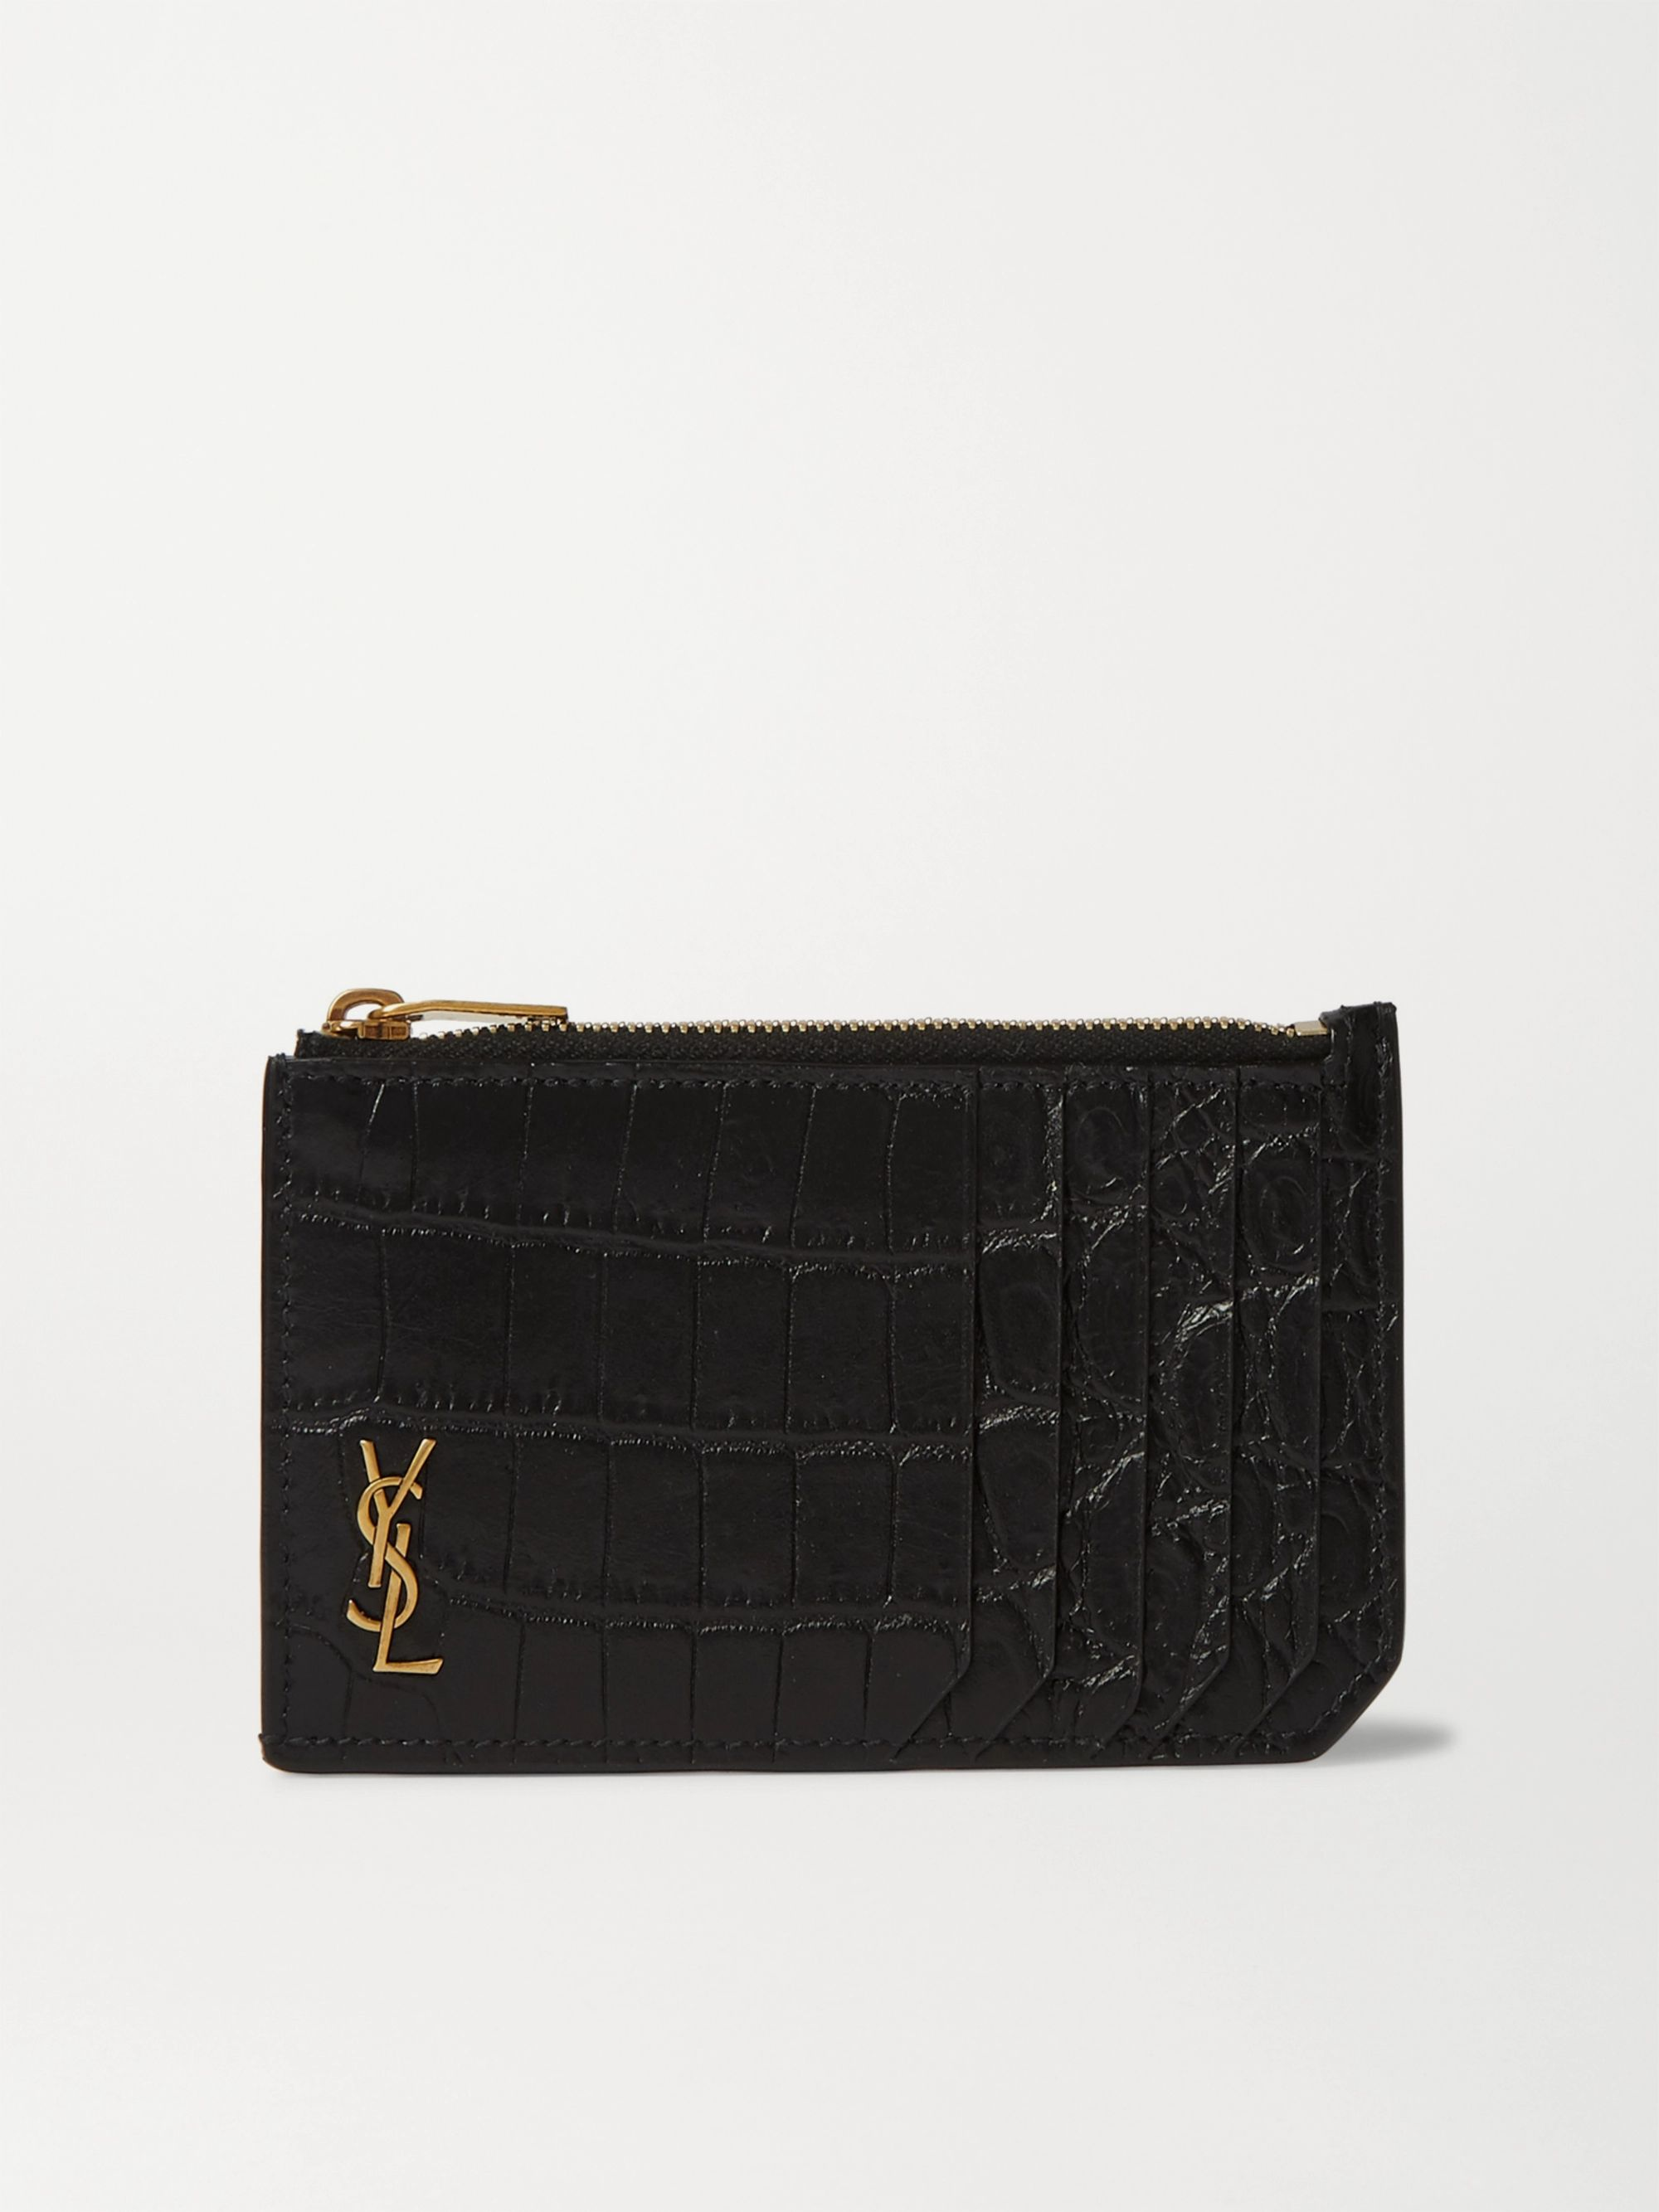 생 로랑 지퍼 카드 케이스 - 크로커다일 블랙 Saint Laurent Logo-Appliqued Croc-Effect Leather Wallet,Black